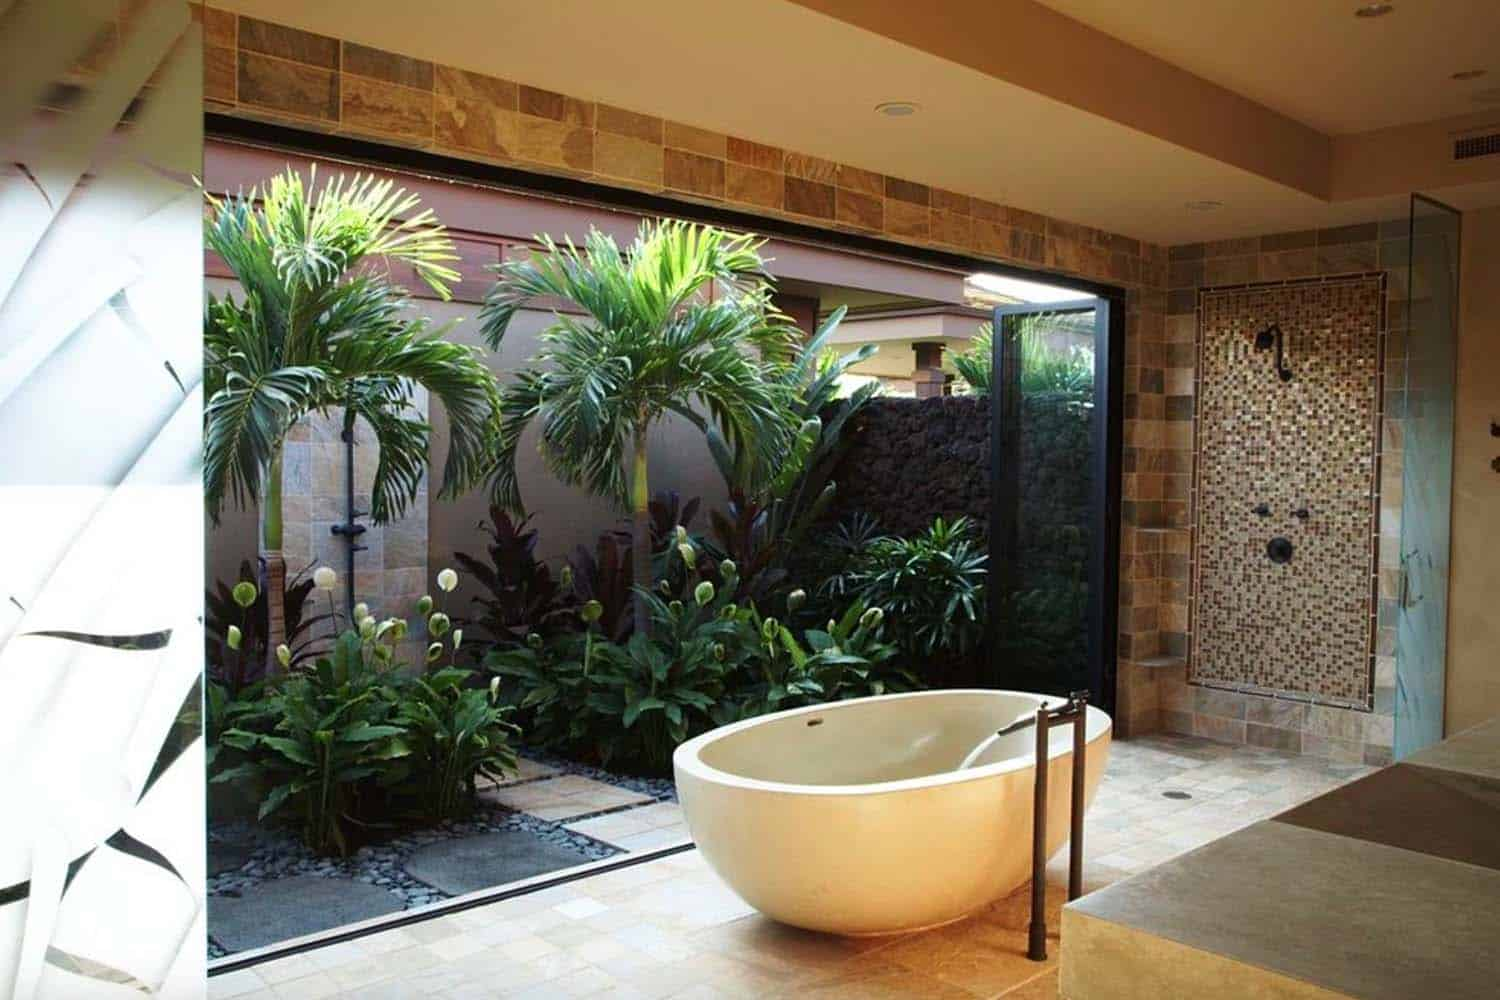 Inspiring Bathrooms Integrating Lush Gardens-08-1 Kindesign